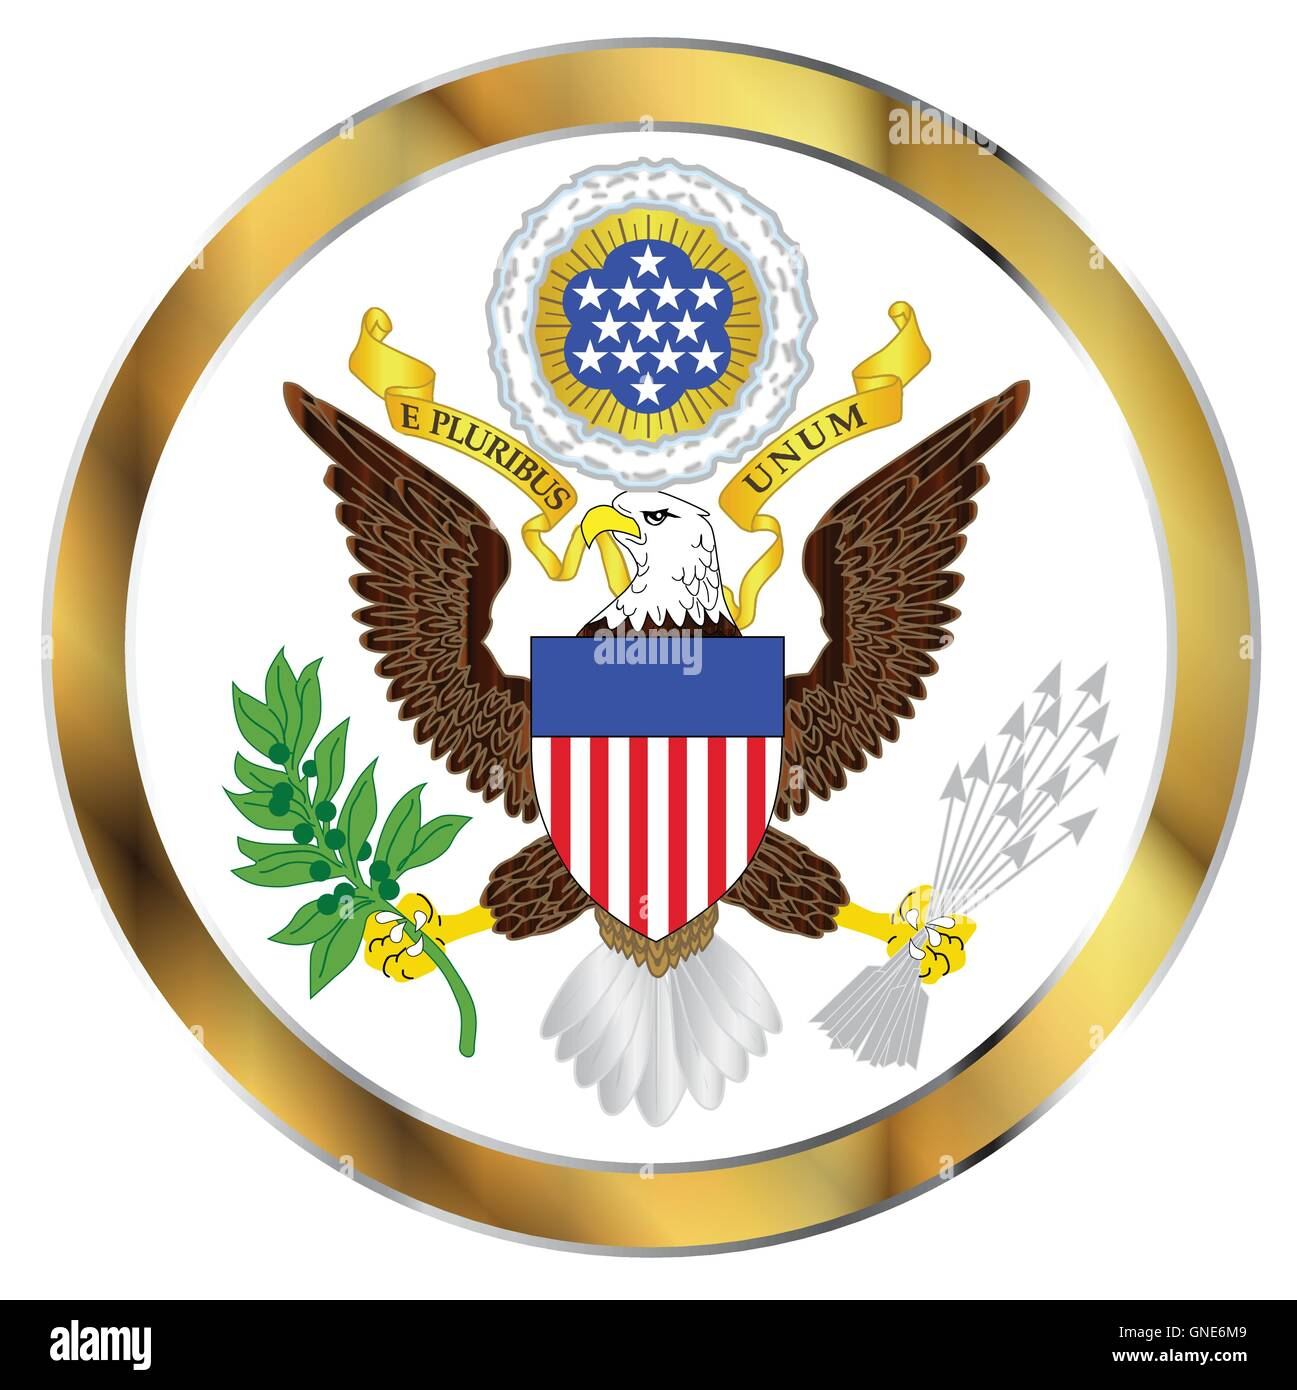 A depiction of the Great Seal of America over a white background - Stock Image